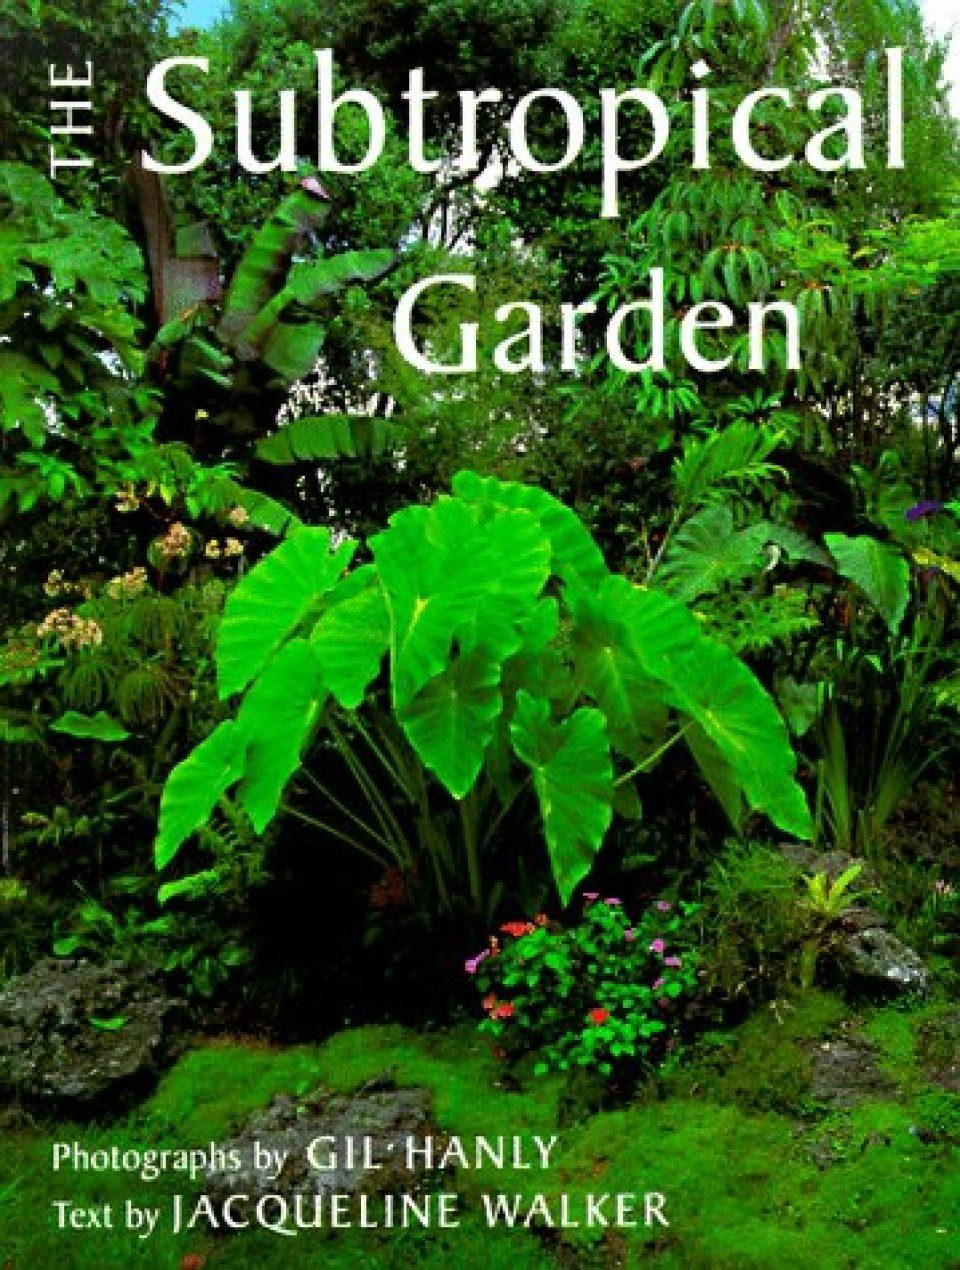 The Subtropical Garden